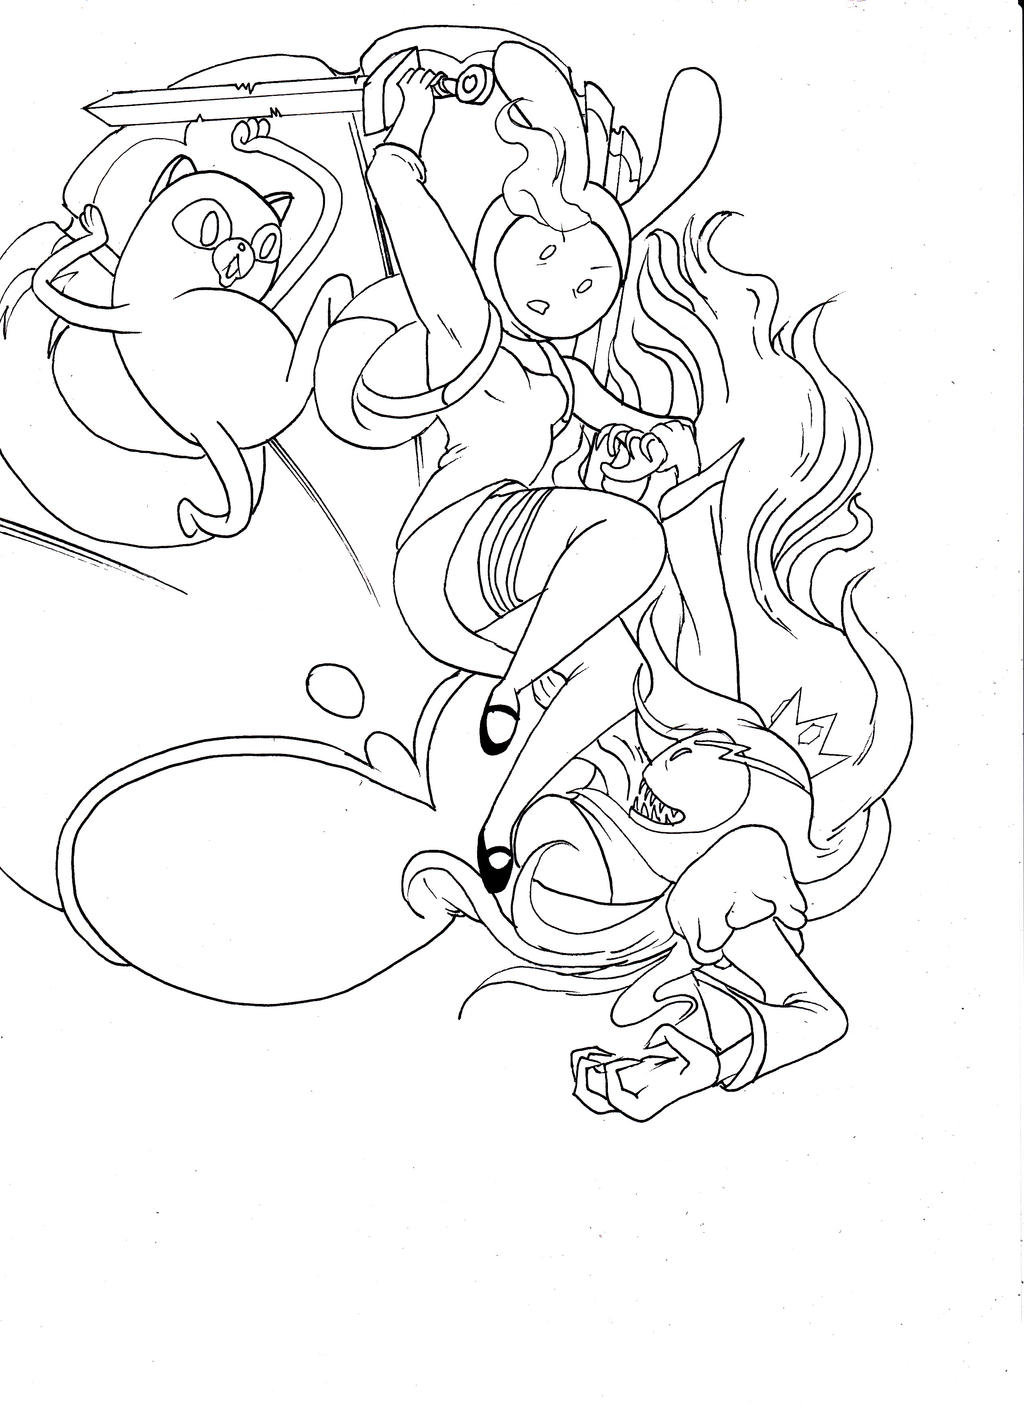 Adventure Time Fionna Line Art By Semajz Fionna And Cake Coloring Pages